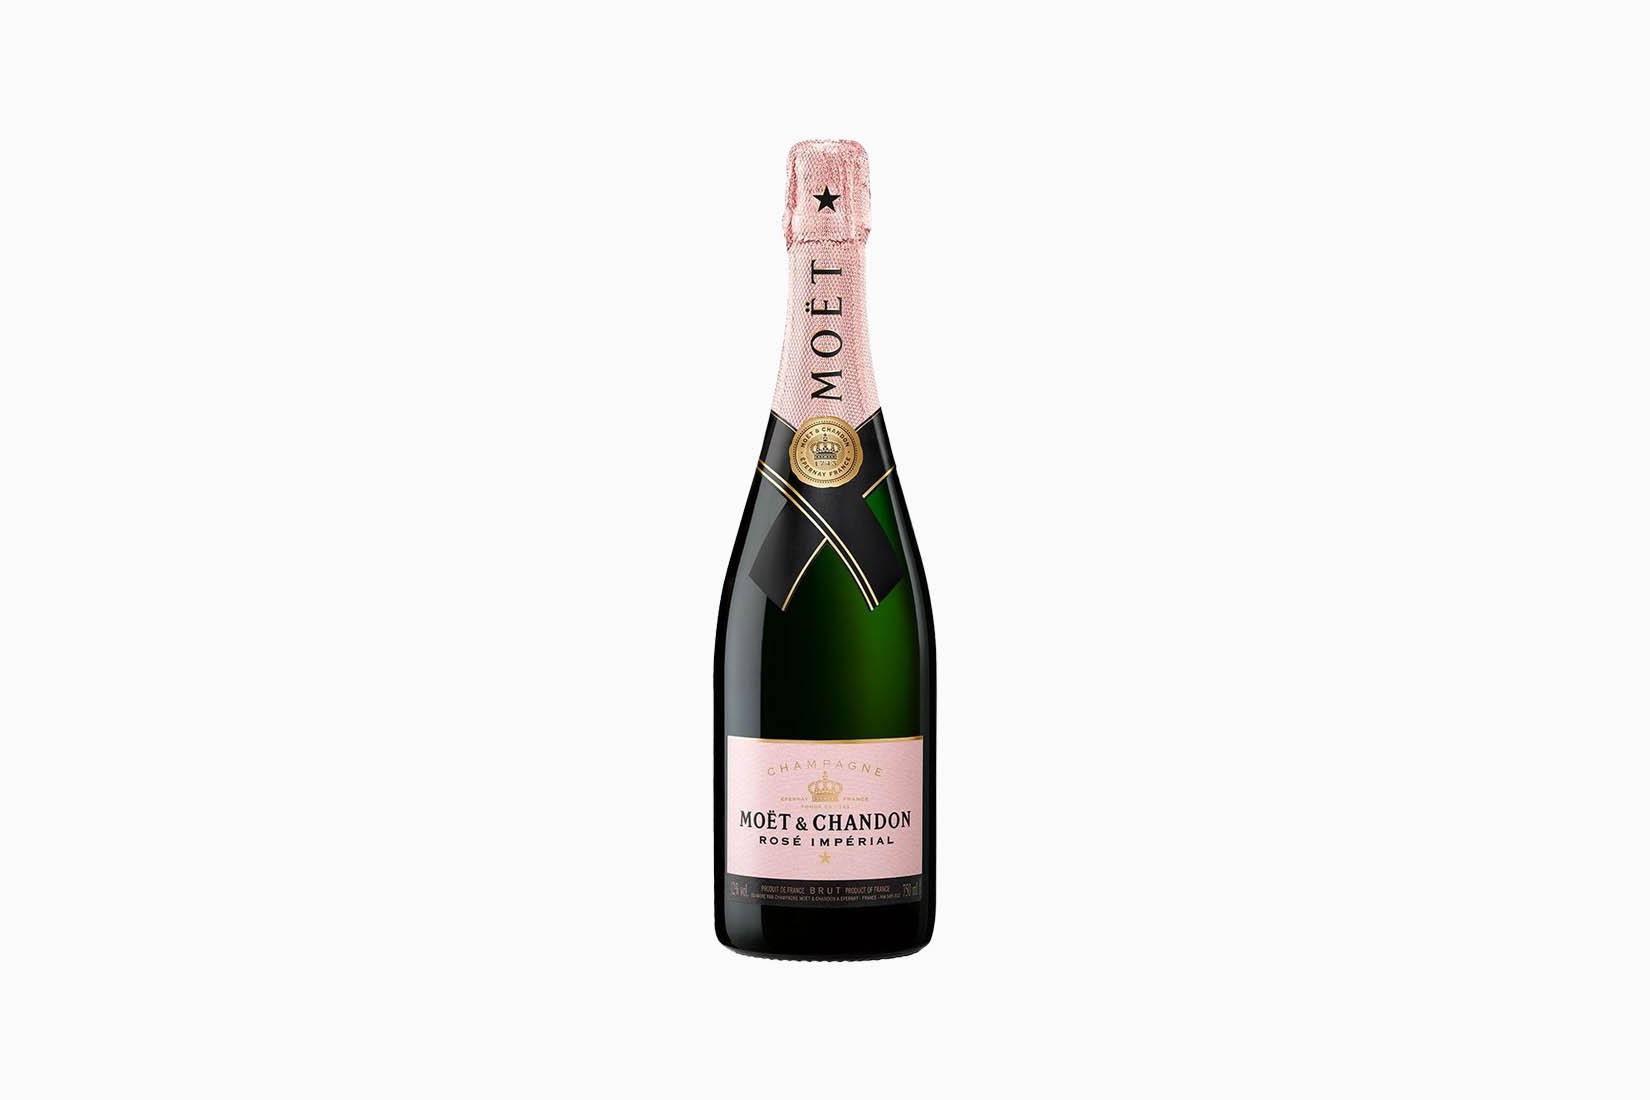 moet chandon champagne rose imperial price review Luxe Digital